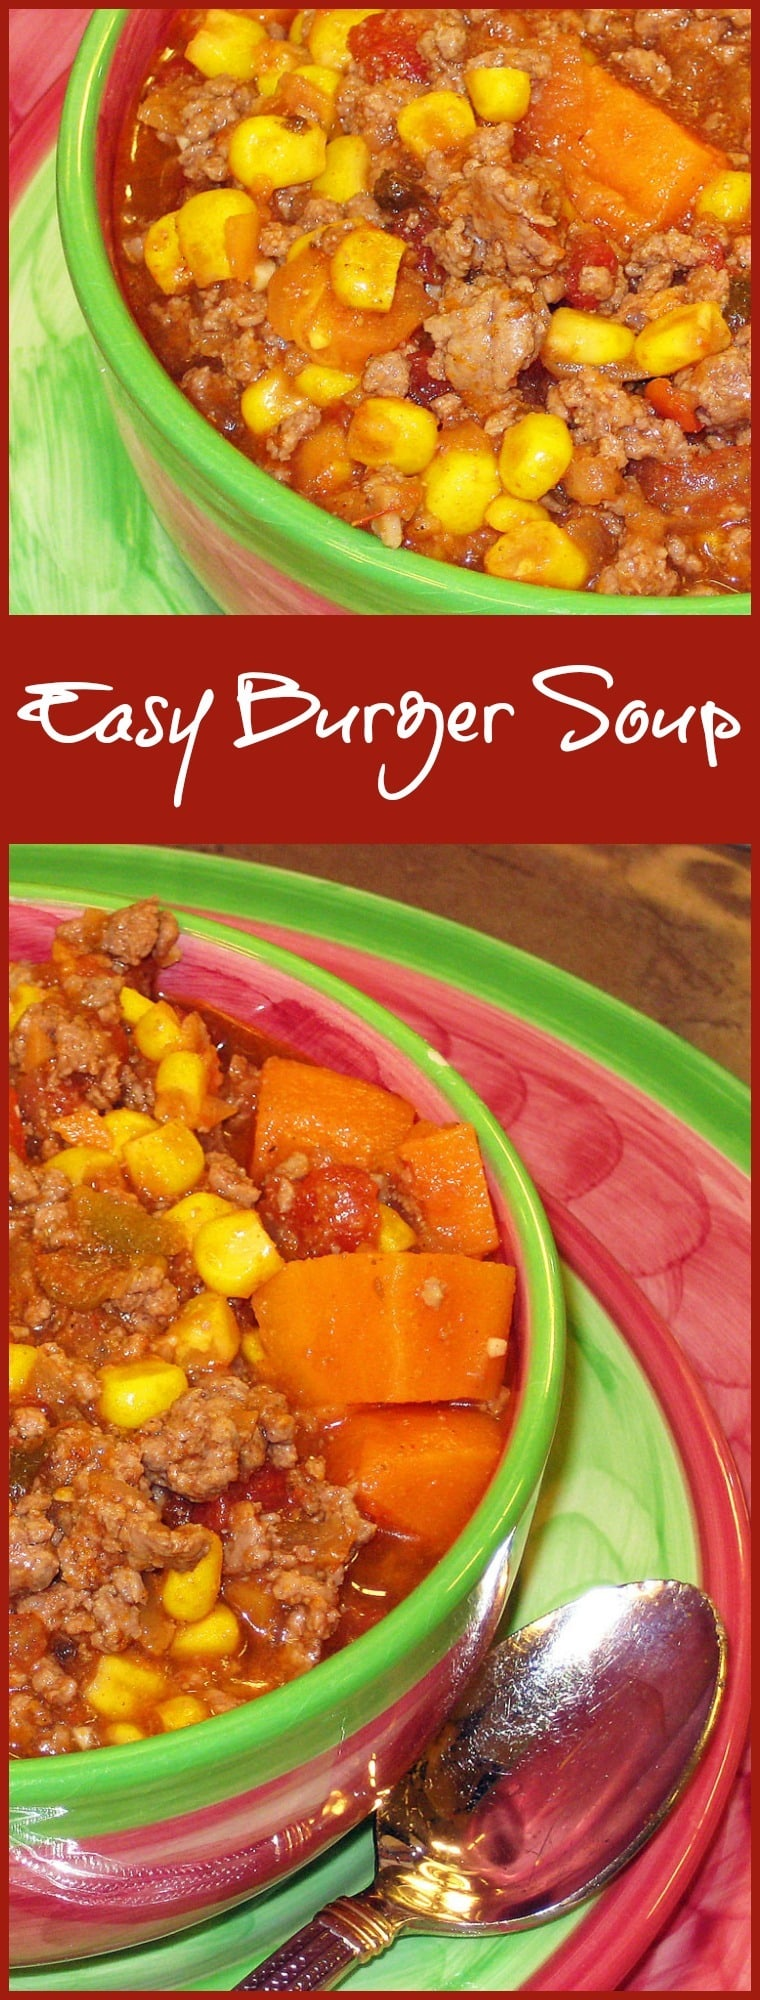 Get this gluten free Easy Burger Soup recipe at This Mama Cooks! On a Diet. It's perfect for cold nights and for serving in your slow cooker at parties and pot lucks!